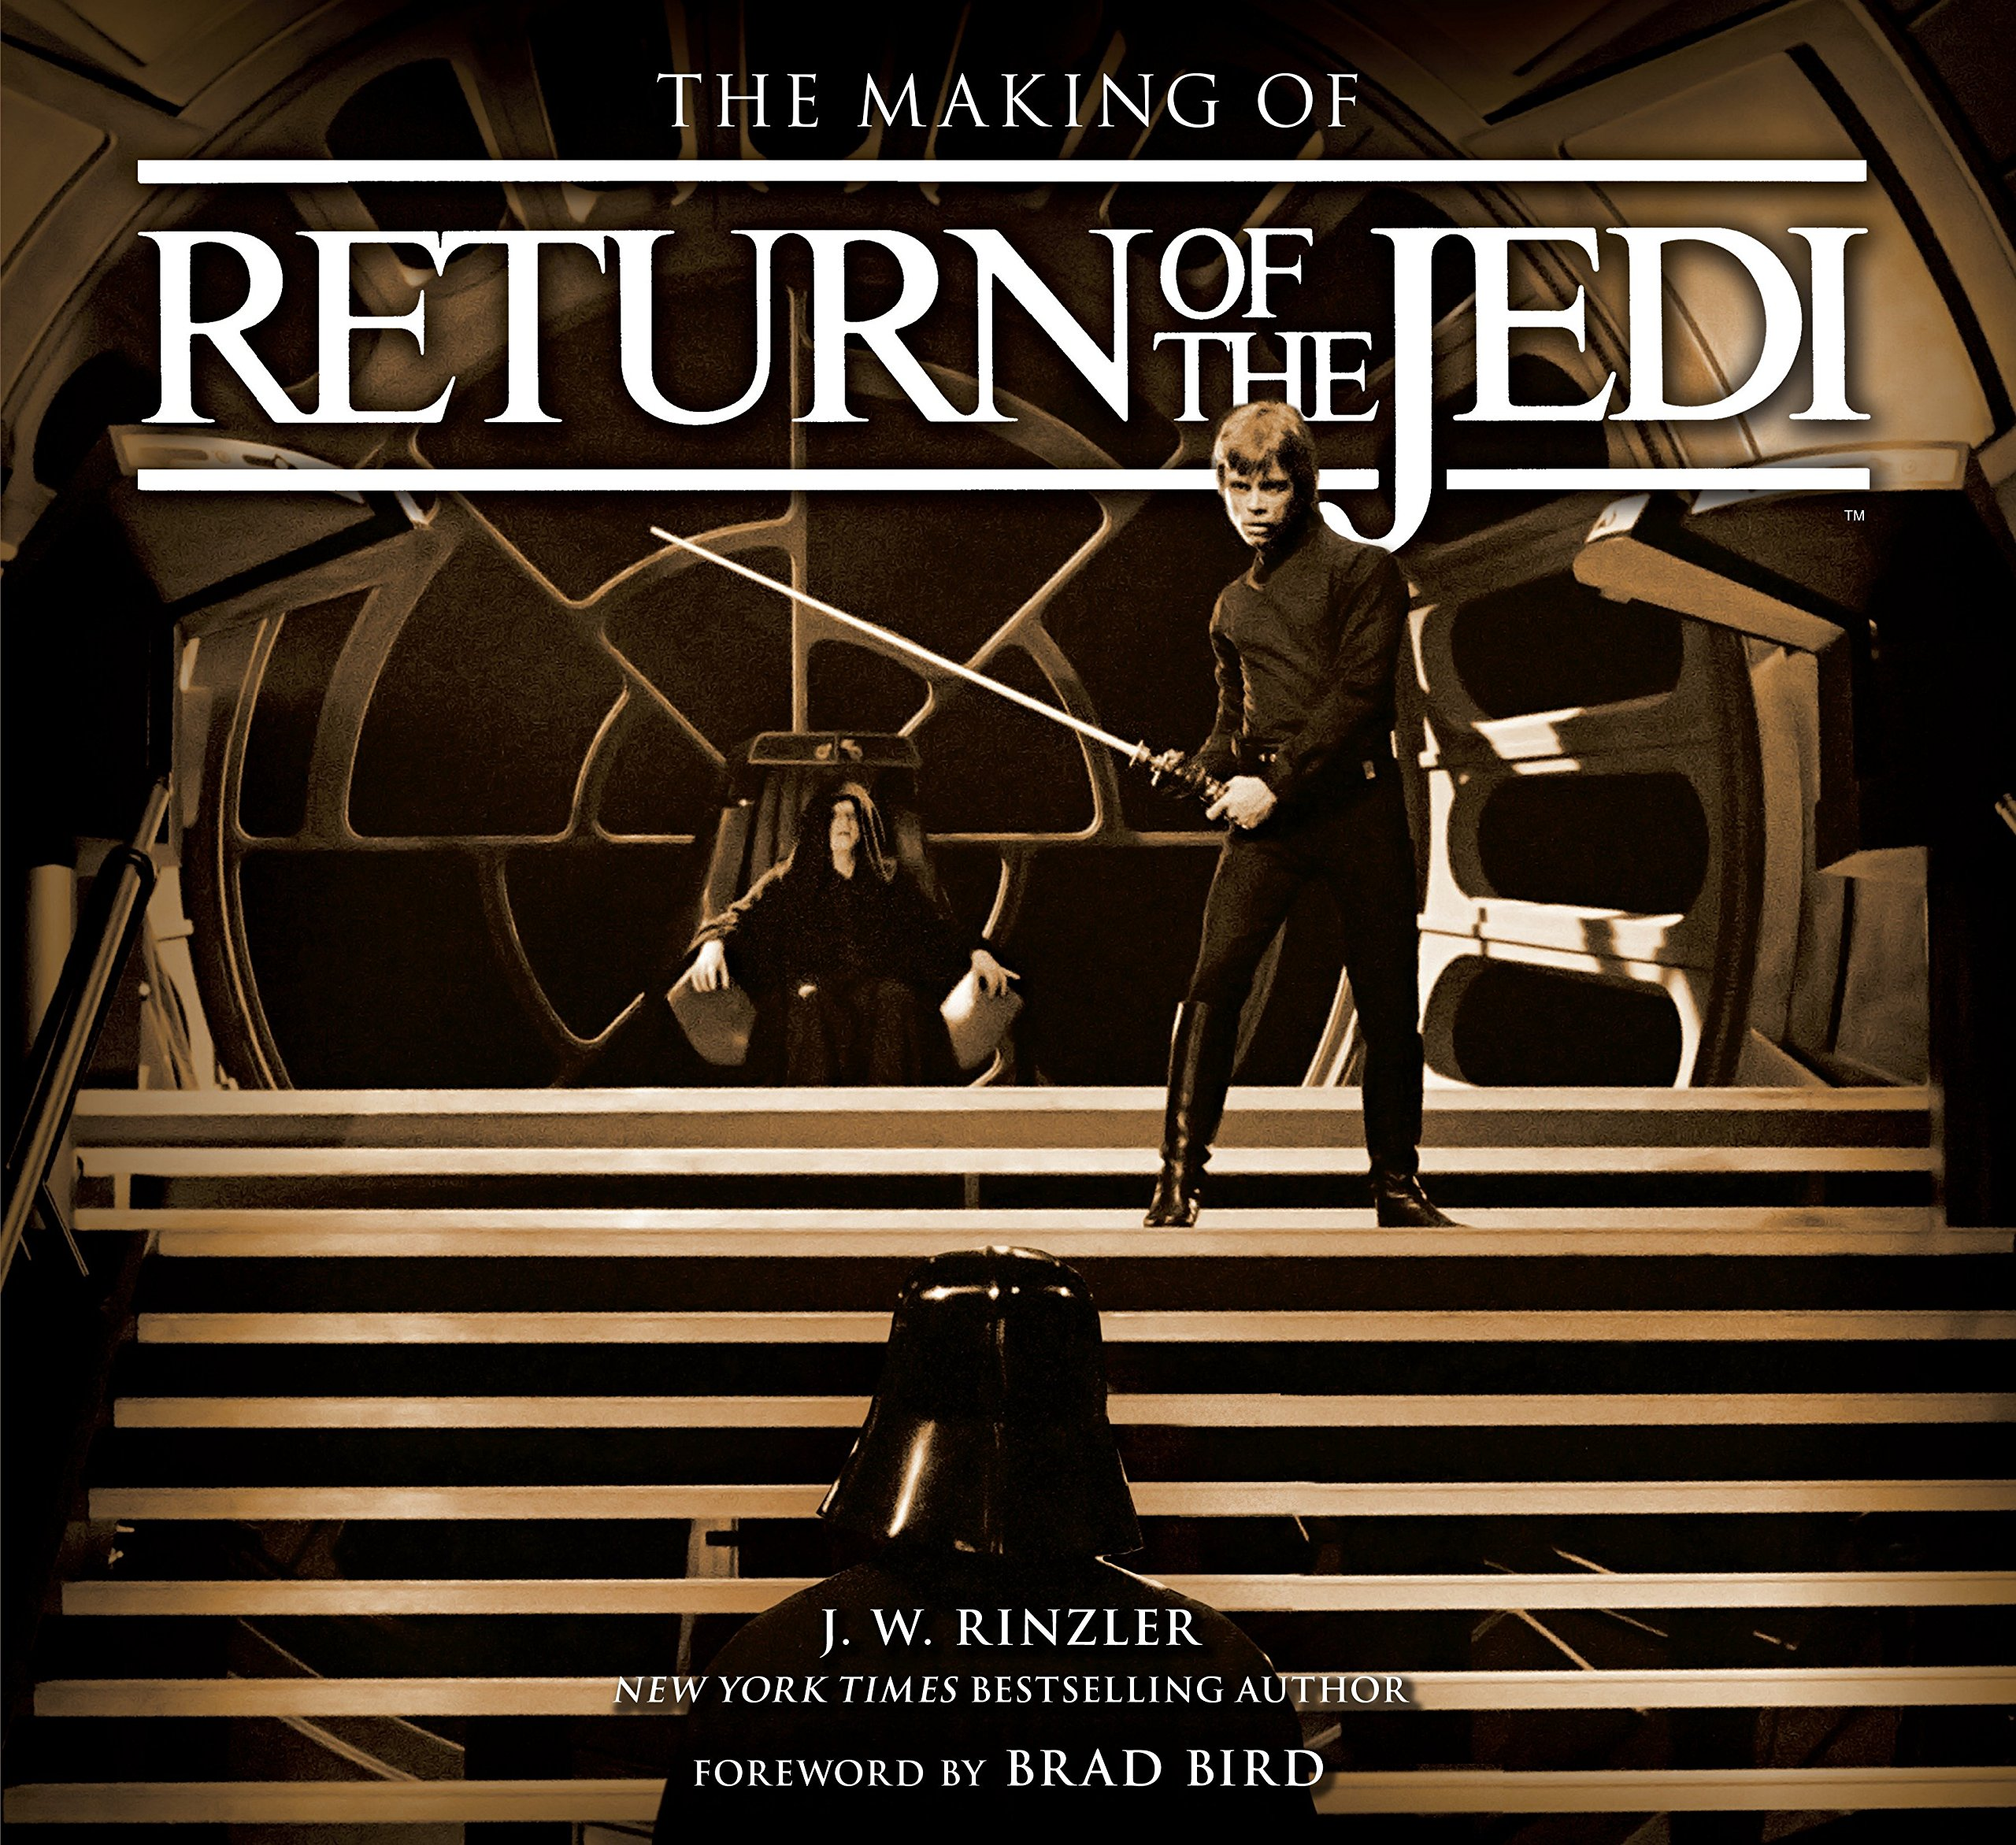 The Making of Star Wars: Return of the Jedi by Lucas Books